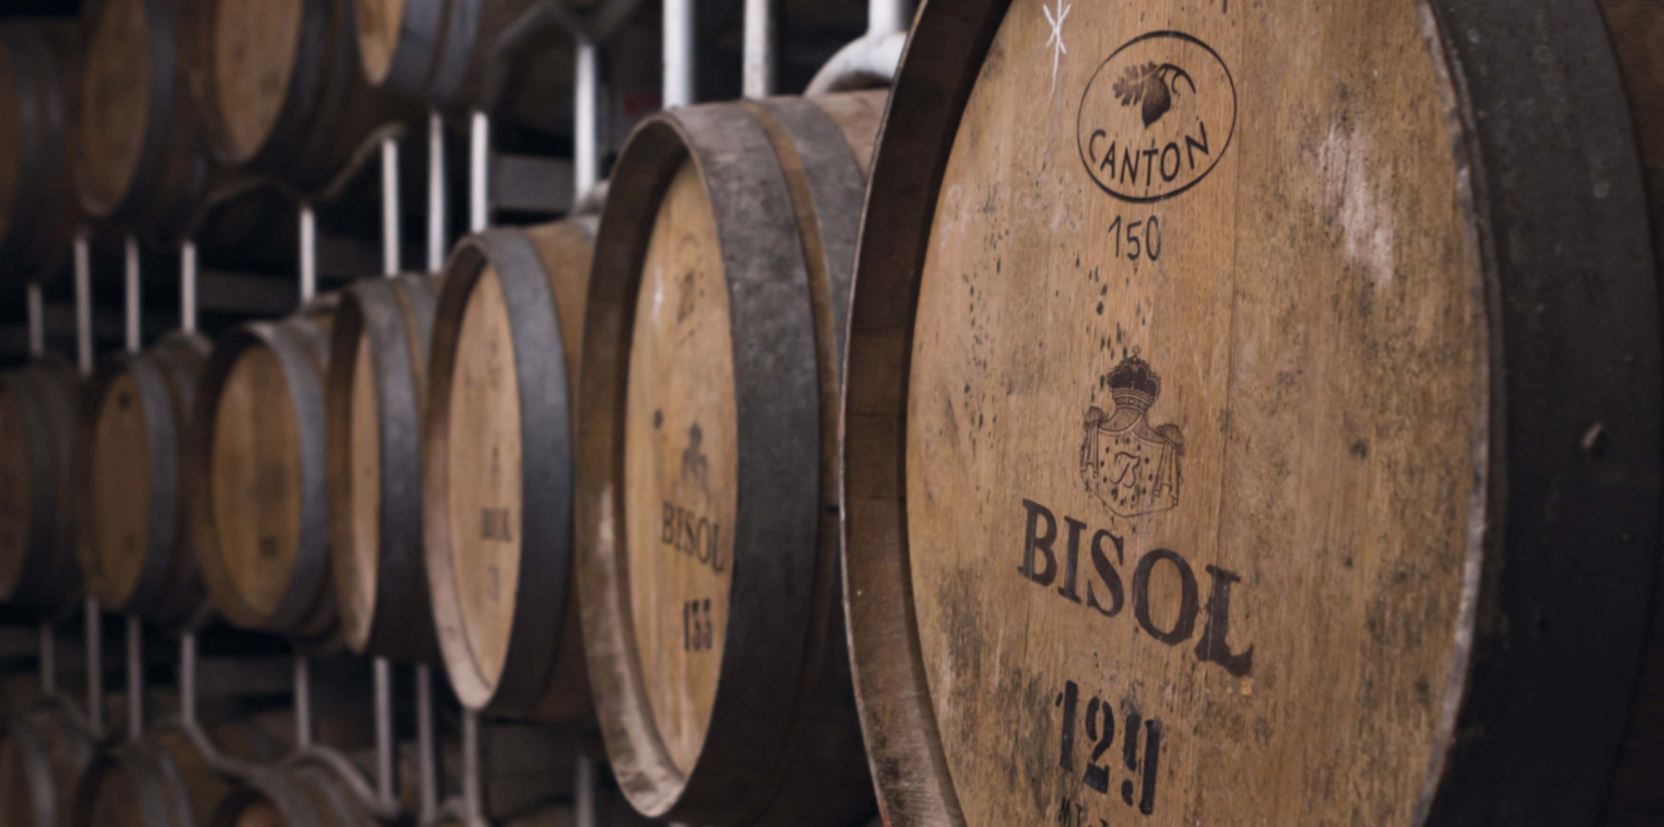 Barrels in the Bisol winery